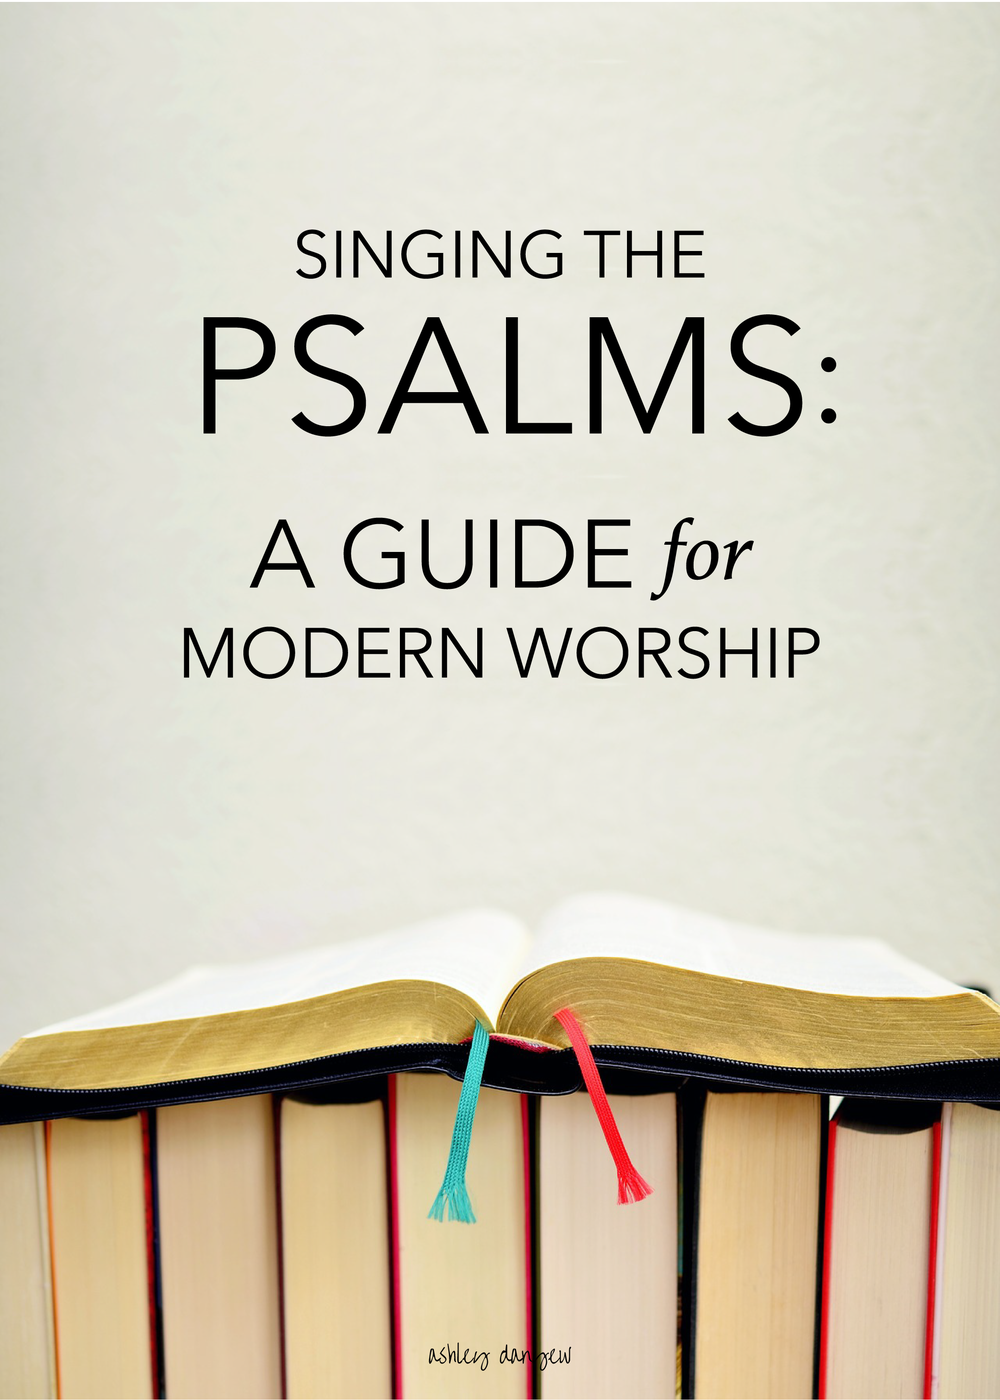 Singing the Psalms - A Guide for Modern Worship-01.png